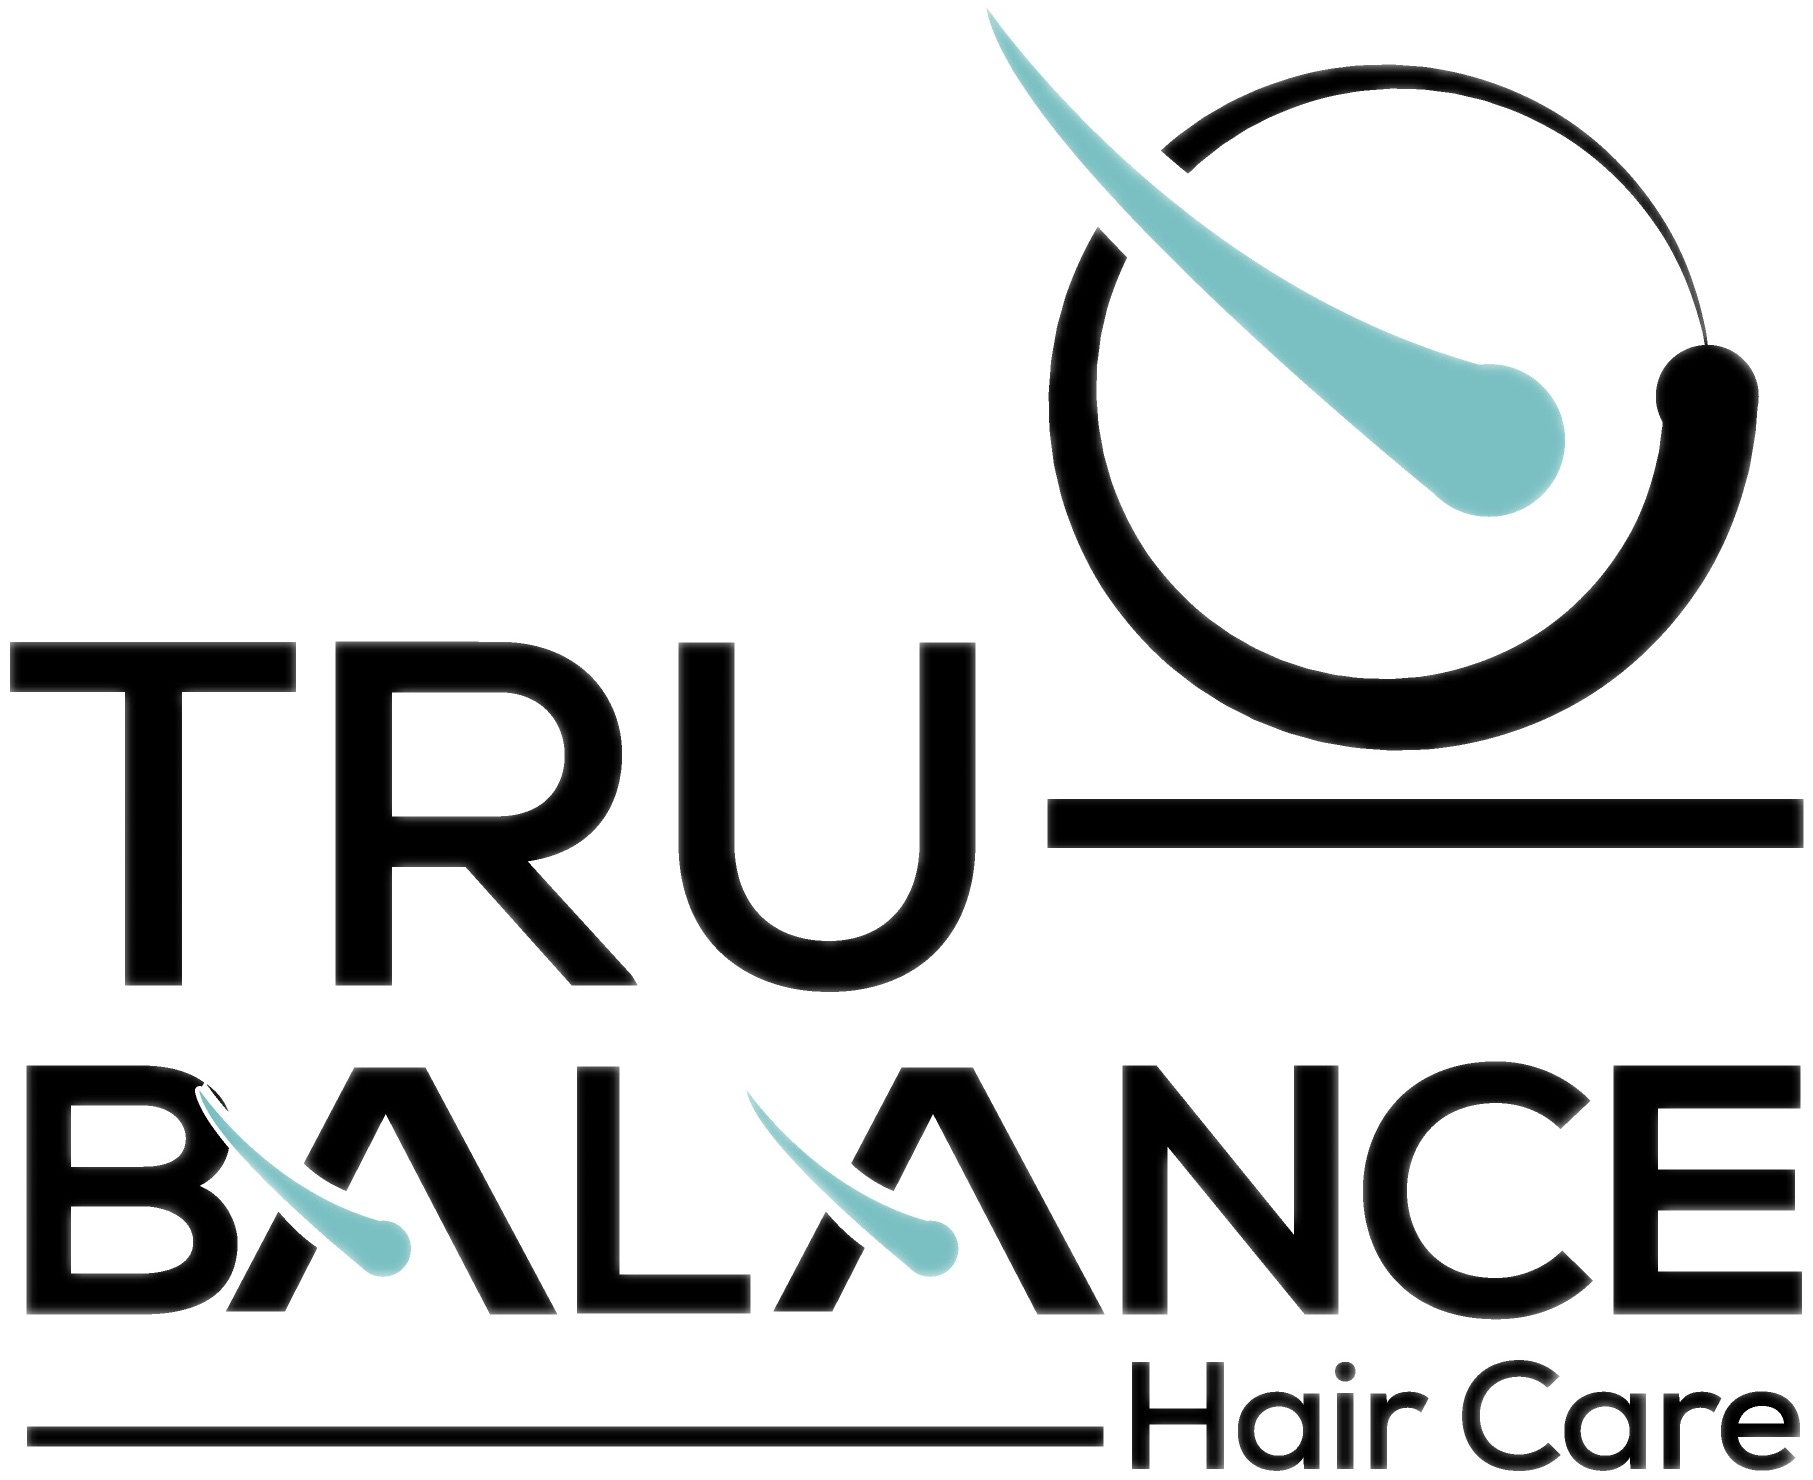 Tru Balance Hair Care Empowers Hair Growth and Women Through Its Naturally Made Products